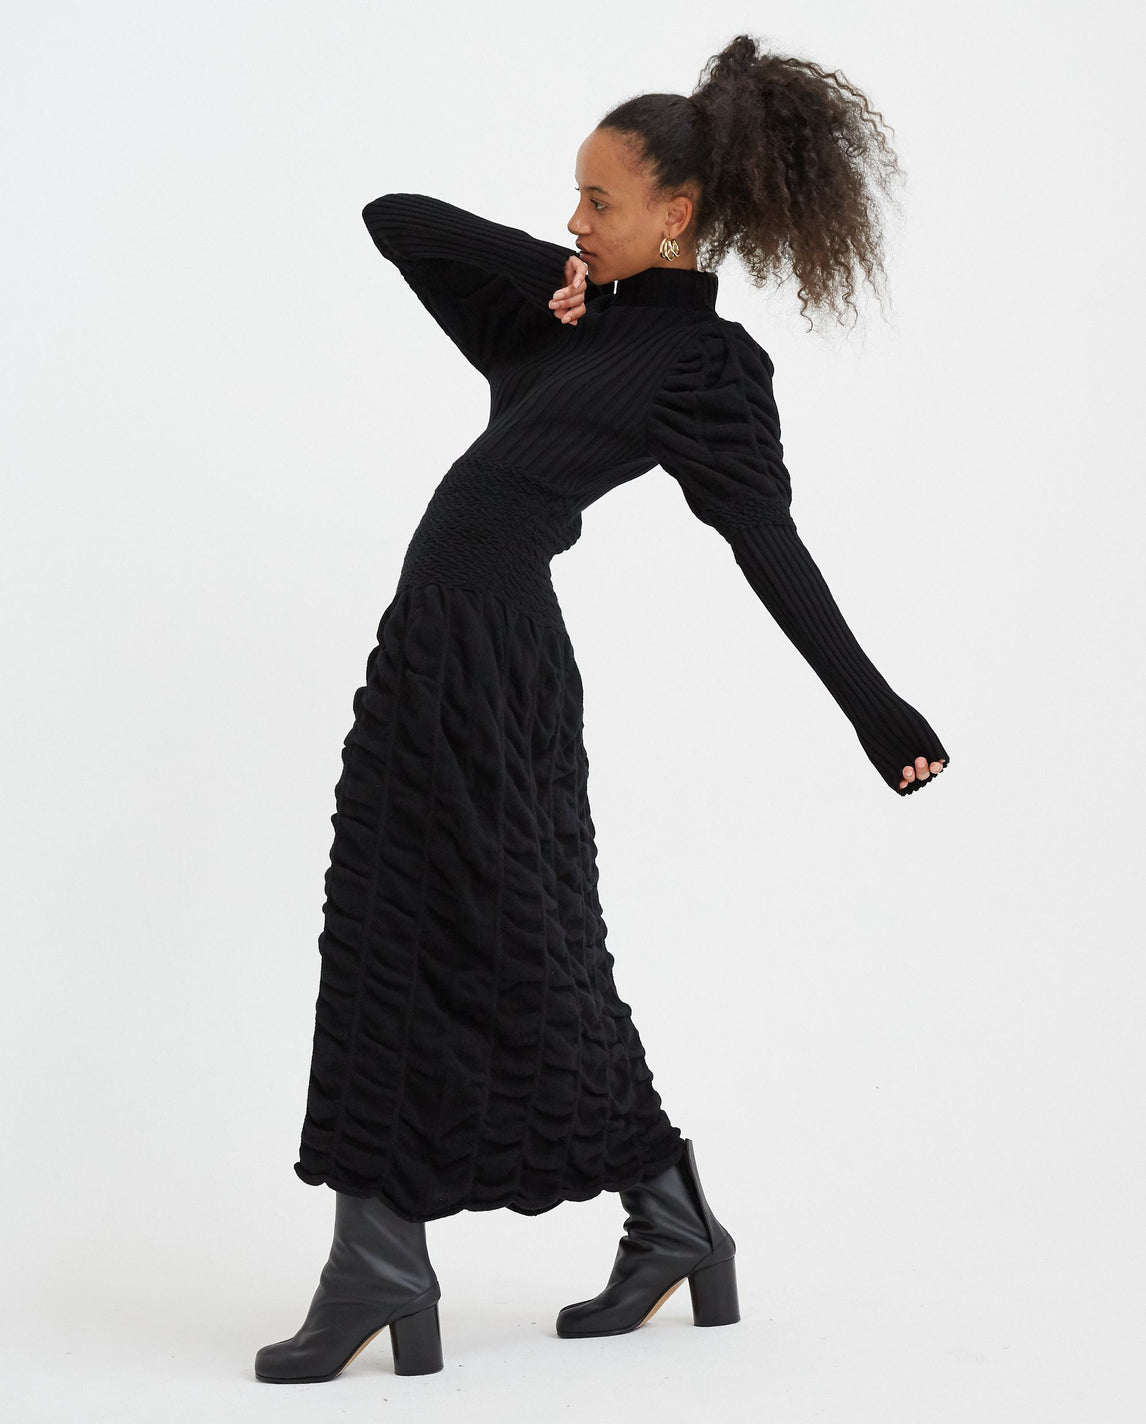 Long Knit Dress - Black WOMENS PAULA CANOVAS DEL VAS